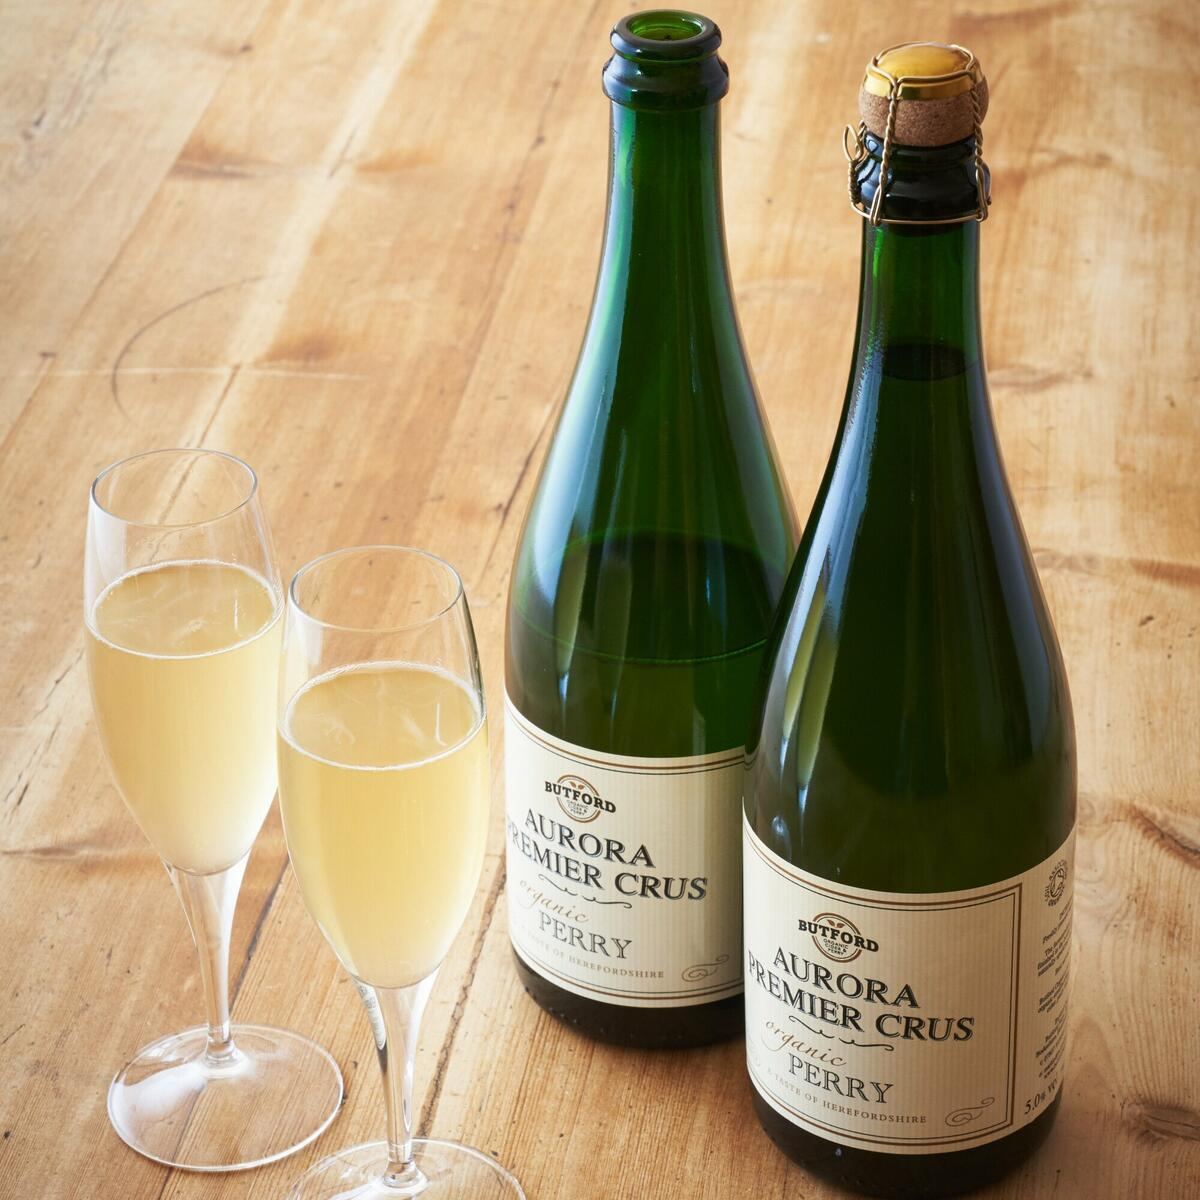 Our signature sparkling perry